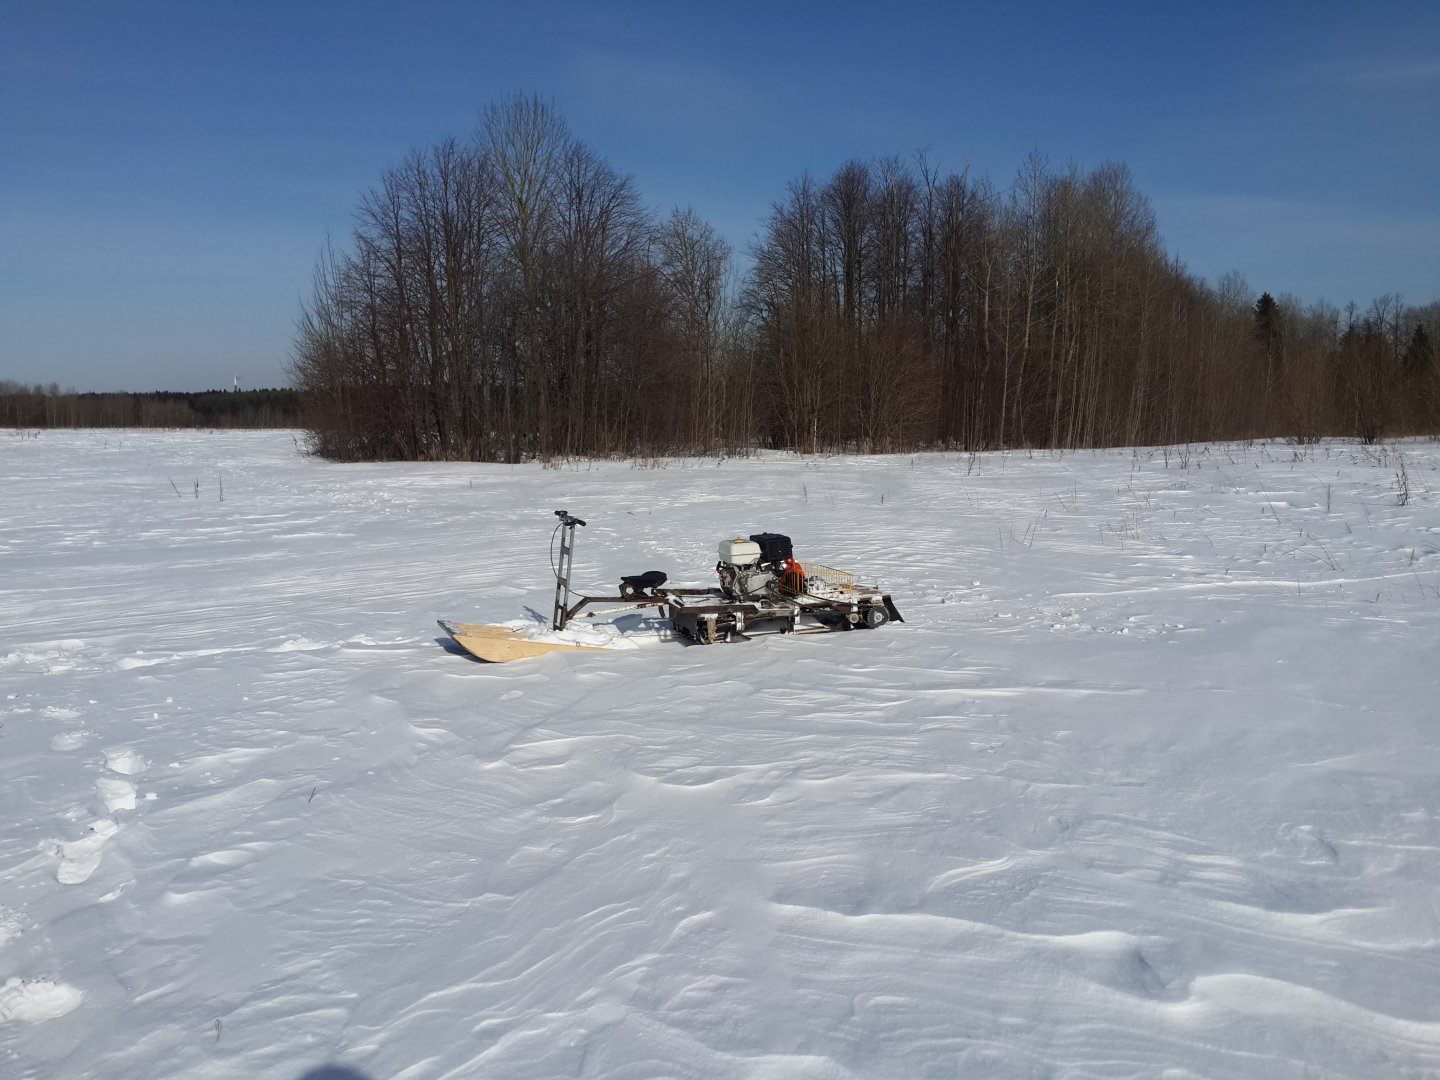 http://www.snowmobile.ru/forum/index.php?attachments/1235361/